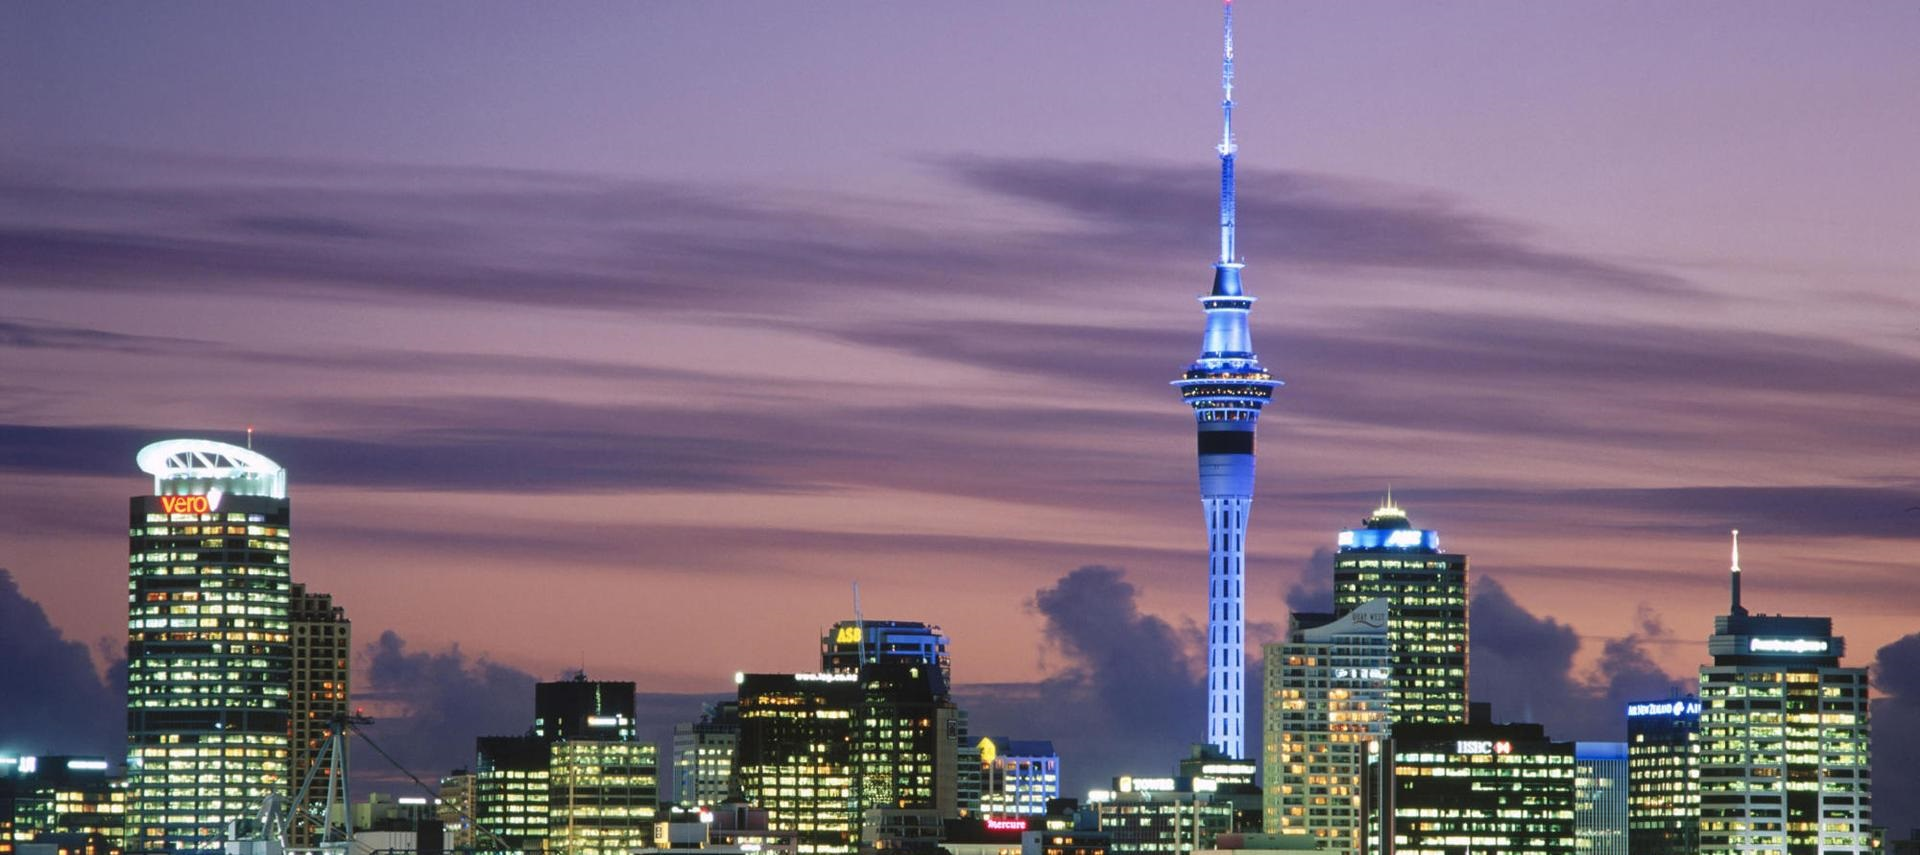 38831-auckland-new-zealand-city-wallpaper-1920×1080